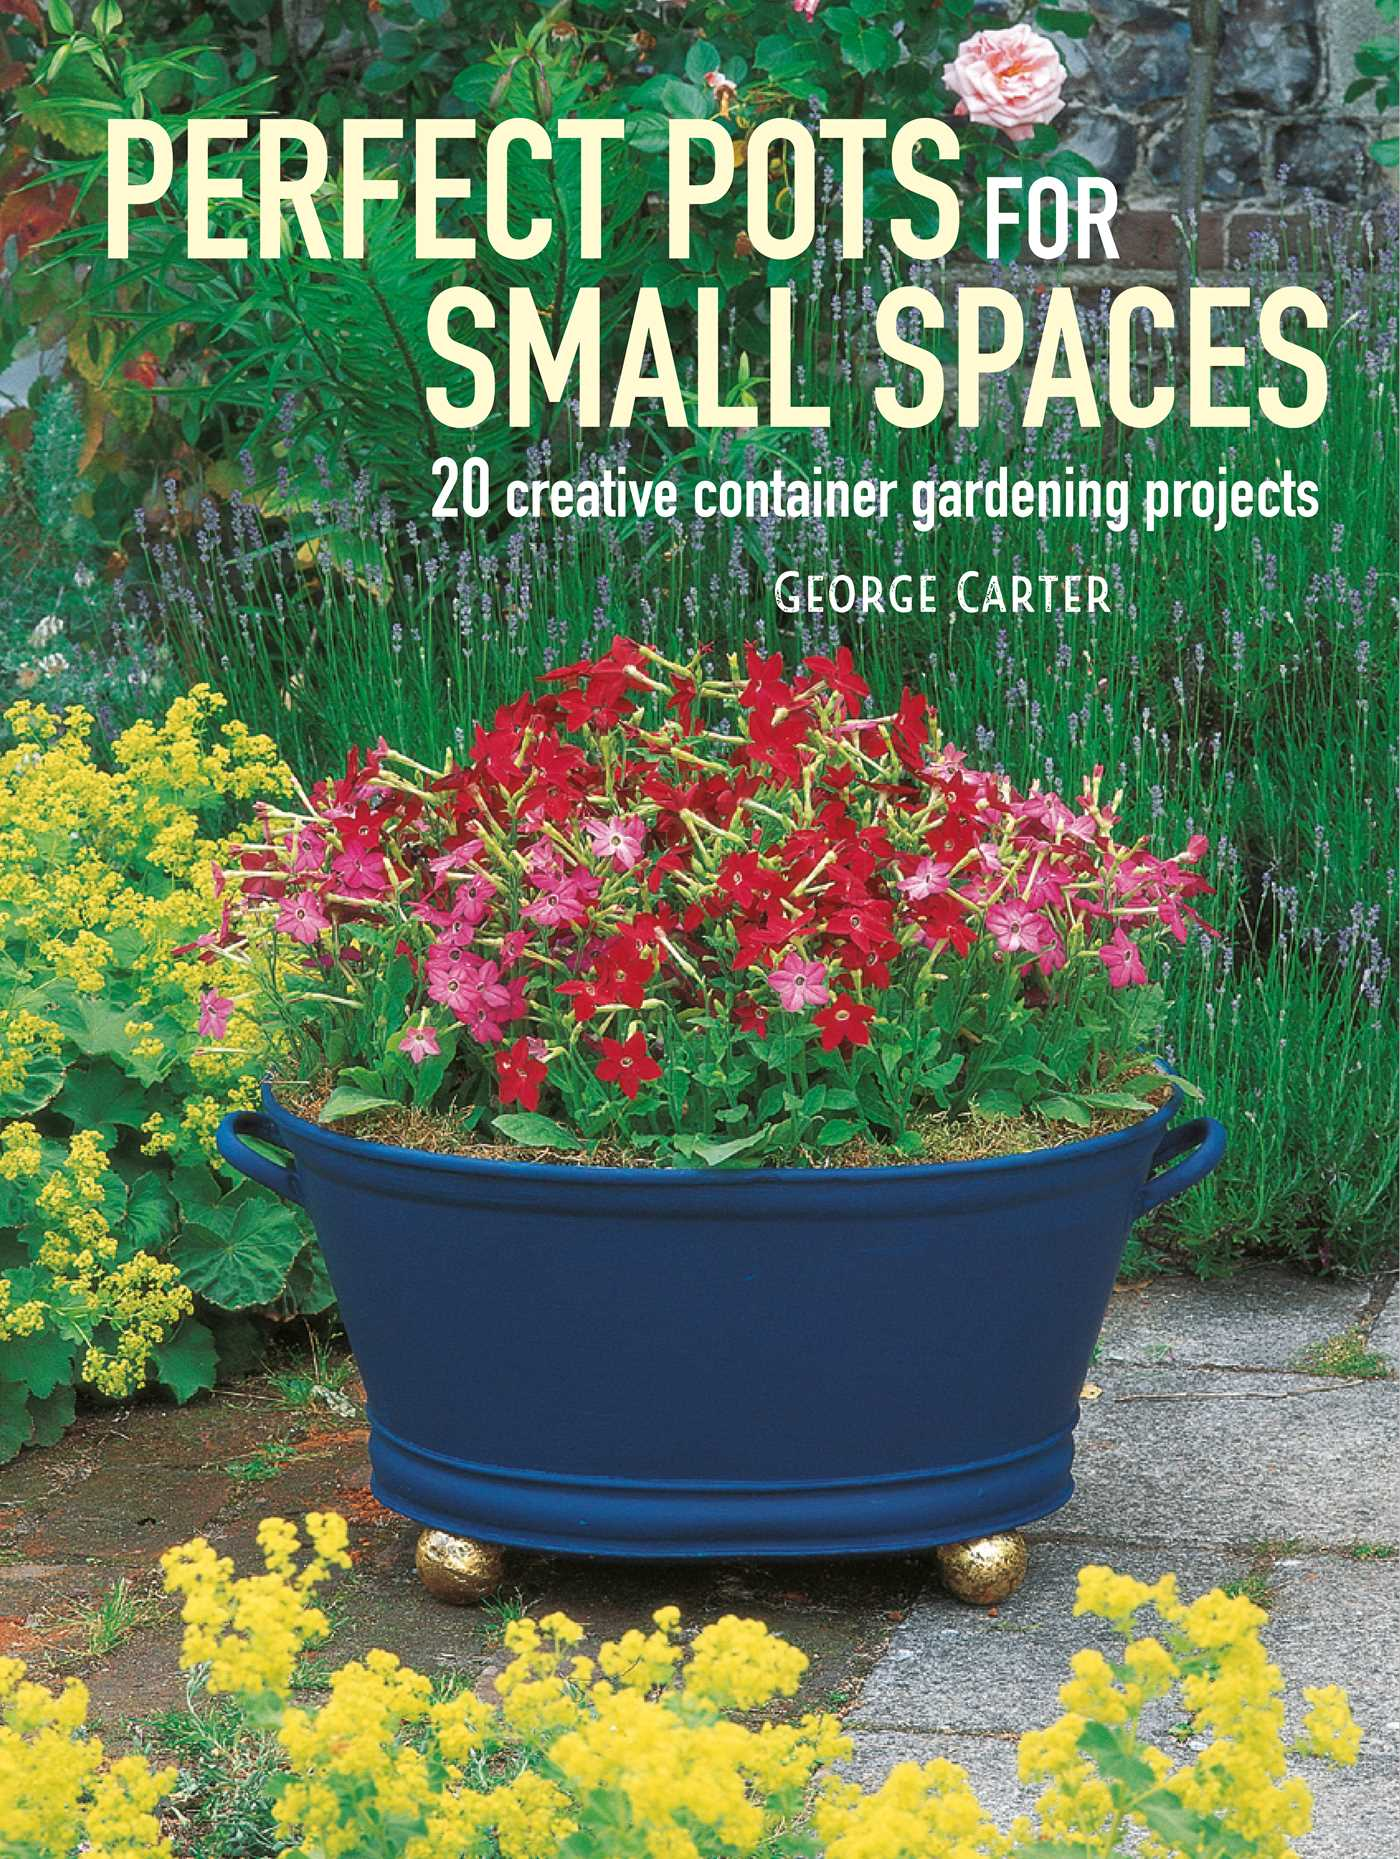 Perfect Pots For Small Spaces Book By George Carter Official Publisher Page Simon Schuster,Home Office Furniture Arrangement Ideas